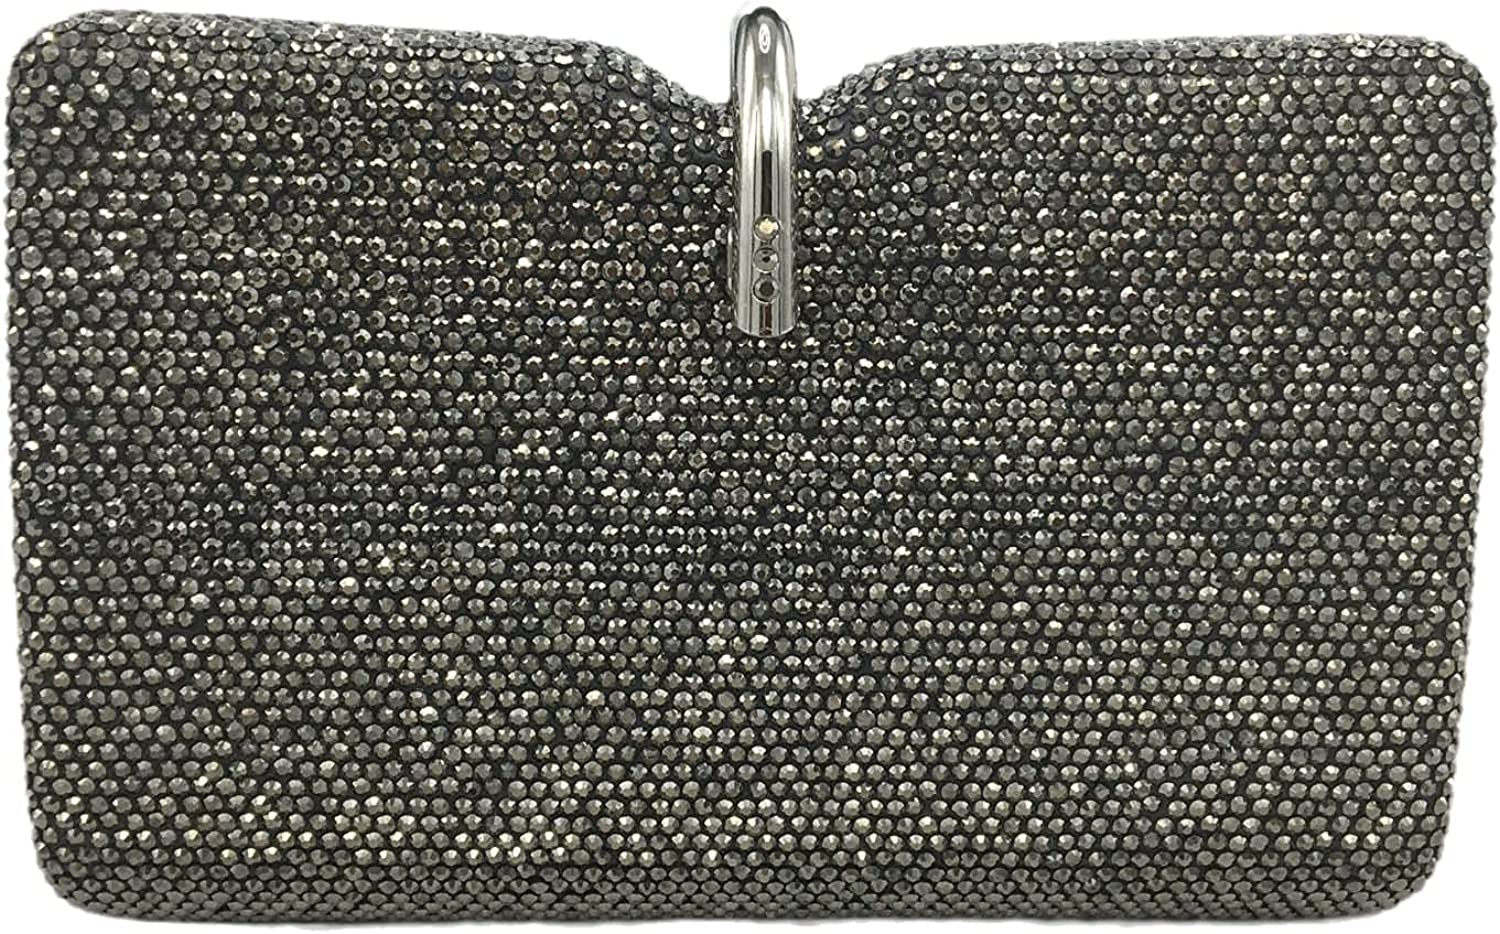 Elegant Women Crystal Evening Bags Party Now on sale Our shop most popular Wedding Diamon Cocktail